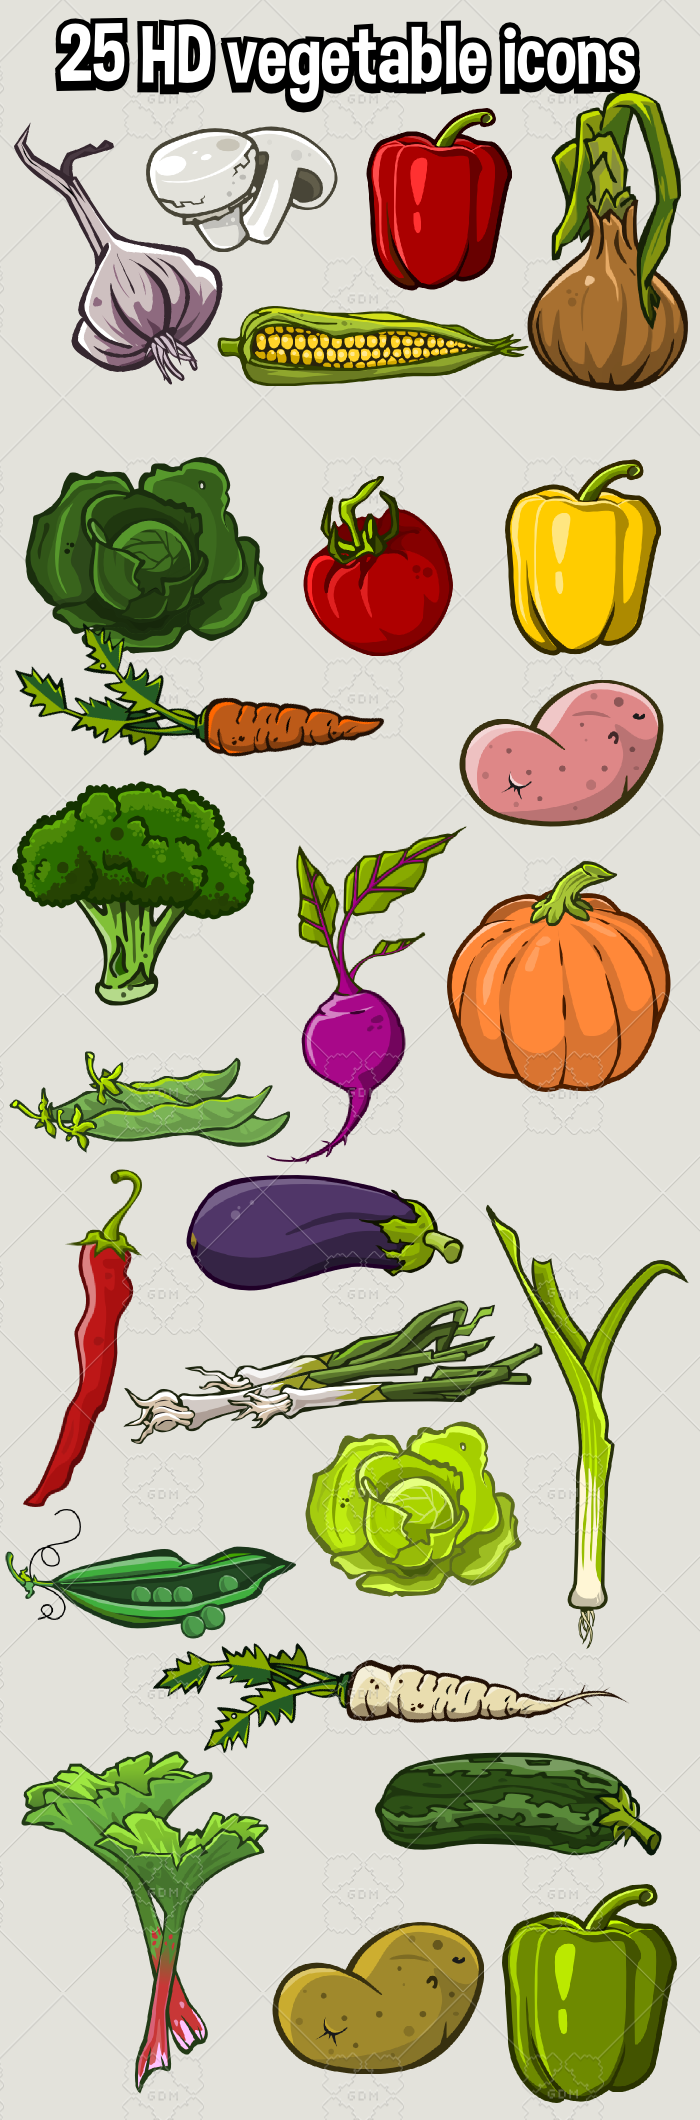 25 hd vegetable Icon packs